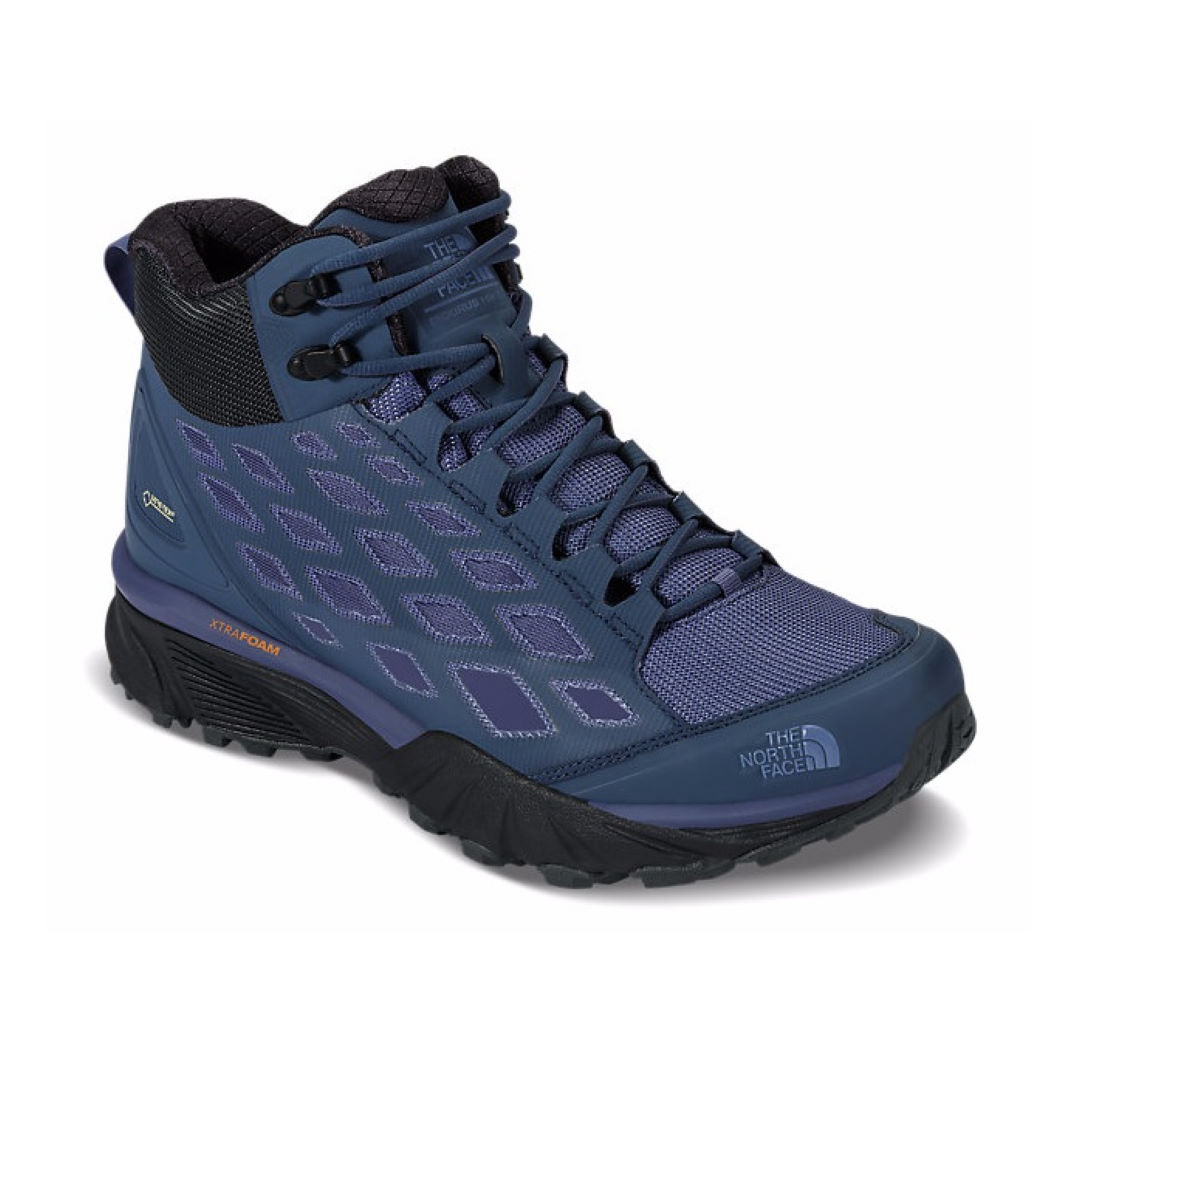 Chaussures Femme The North Face Endurus Hike Mid GTX - 5 UK